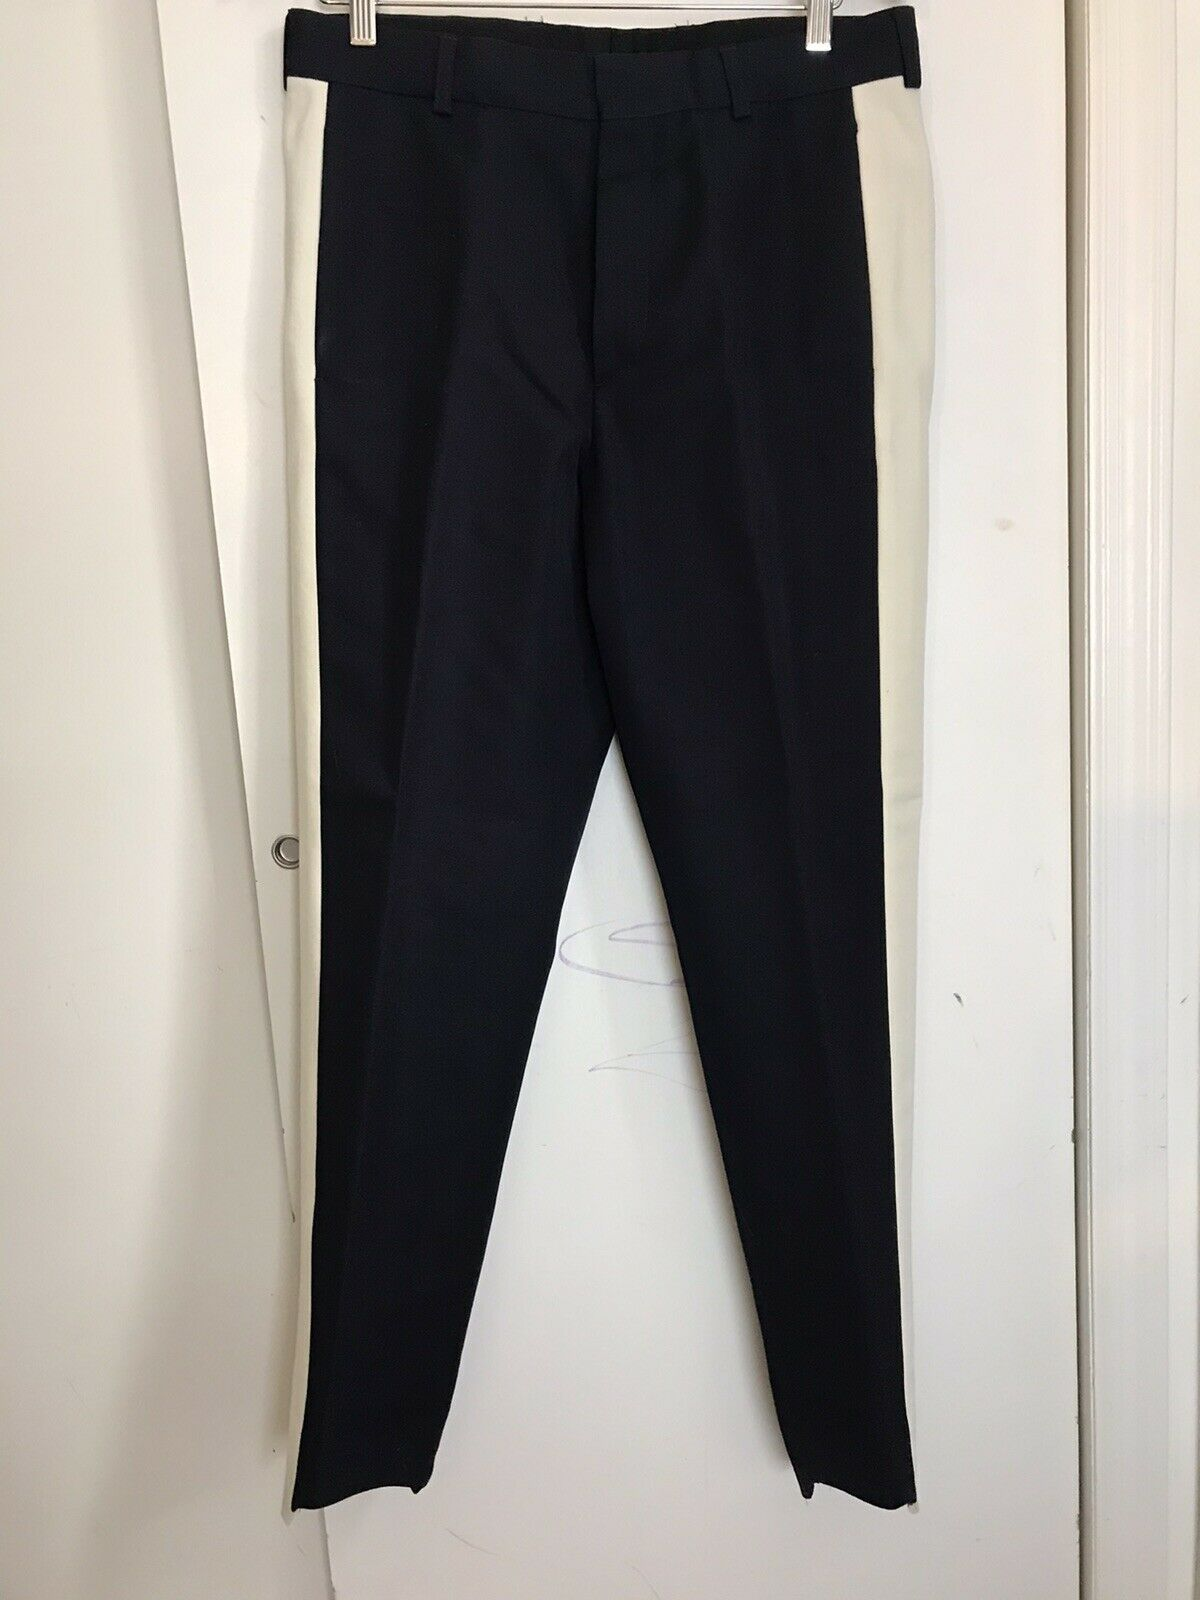 DRIES VAN NOTE  Men's Navy/ White Pants sz US 32 Italian 48